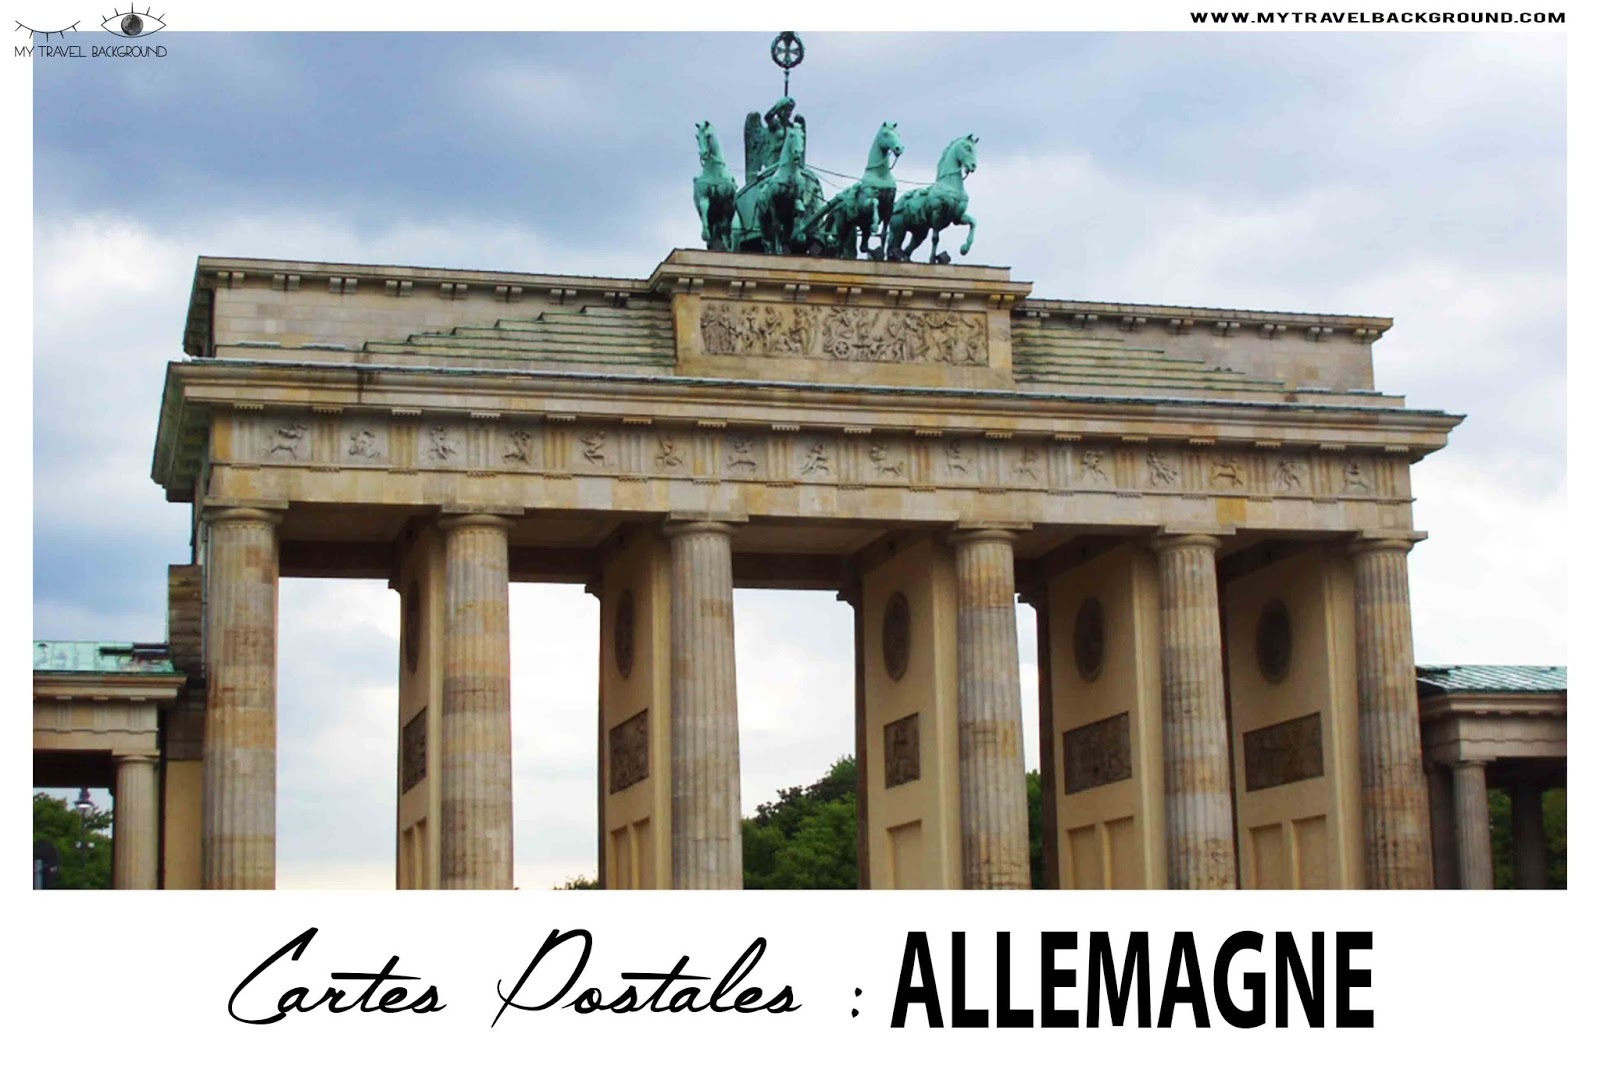 My Travel Background : Cartes Postale Allemagne